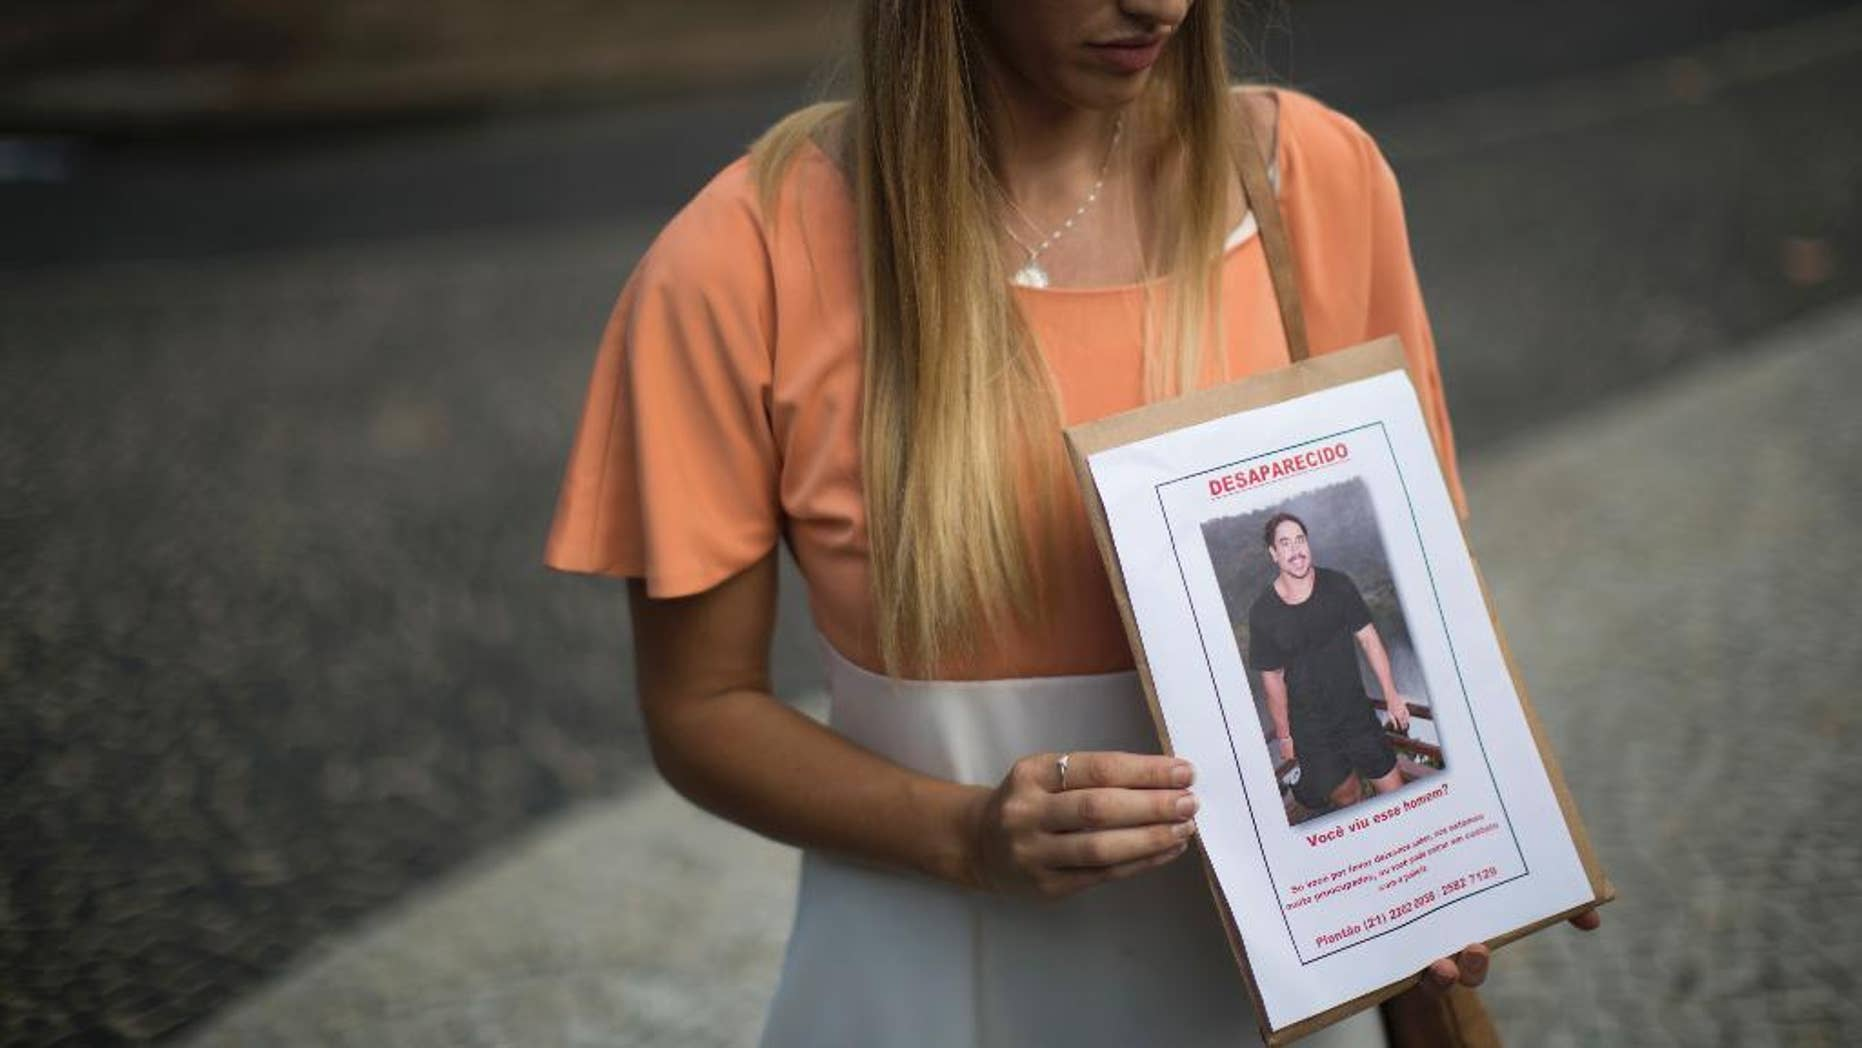 FILE - In this June 3, 2016 file photo, Bonnie Cuthbert, of Australia, shows a photo of her missing boyfriend Rye Hunt, 25, during a press conference in Rio de Janeiro, Brazil. Hunt, an electrician who worked at a mine in western Australian, was in Rio as part of a world trip with a friend where he was last seen on May 21. On Saturday, June 11, police confirmed that the body that washed up on a beach near Rio de Janeiro three days prior is Hunt, adding that investigators have not been able to establish the cause of death. (AP Photo/Felipe Dana, File)